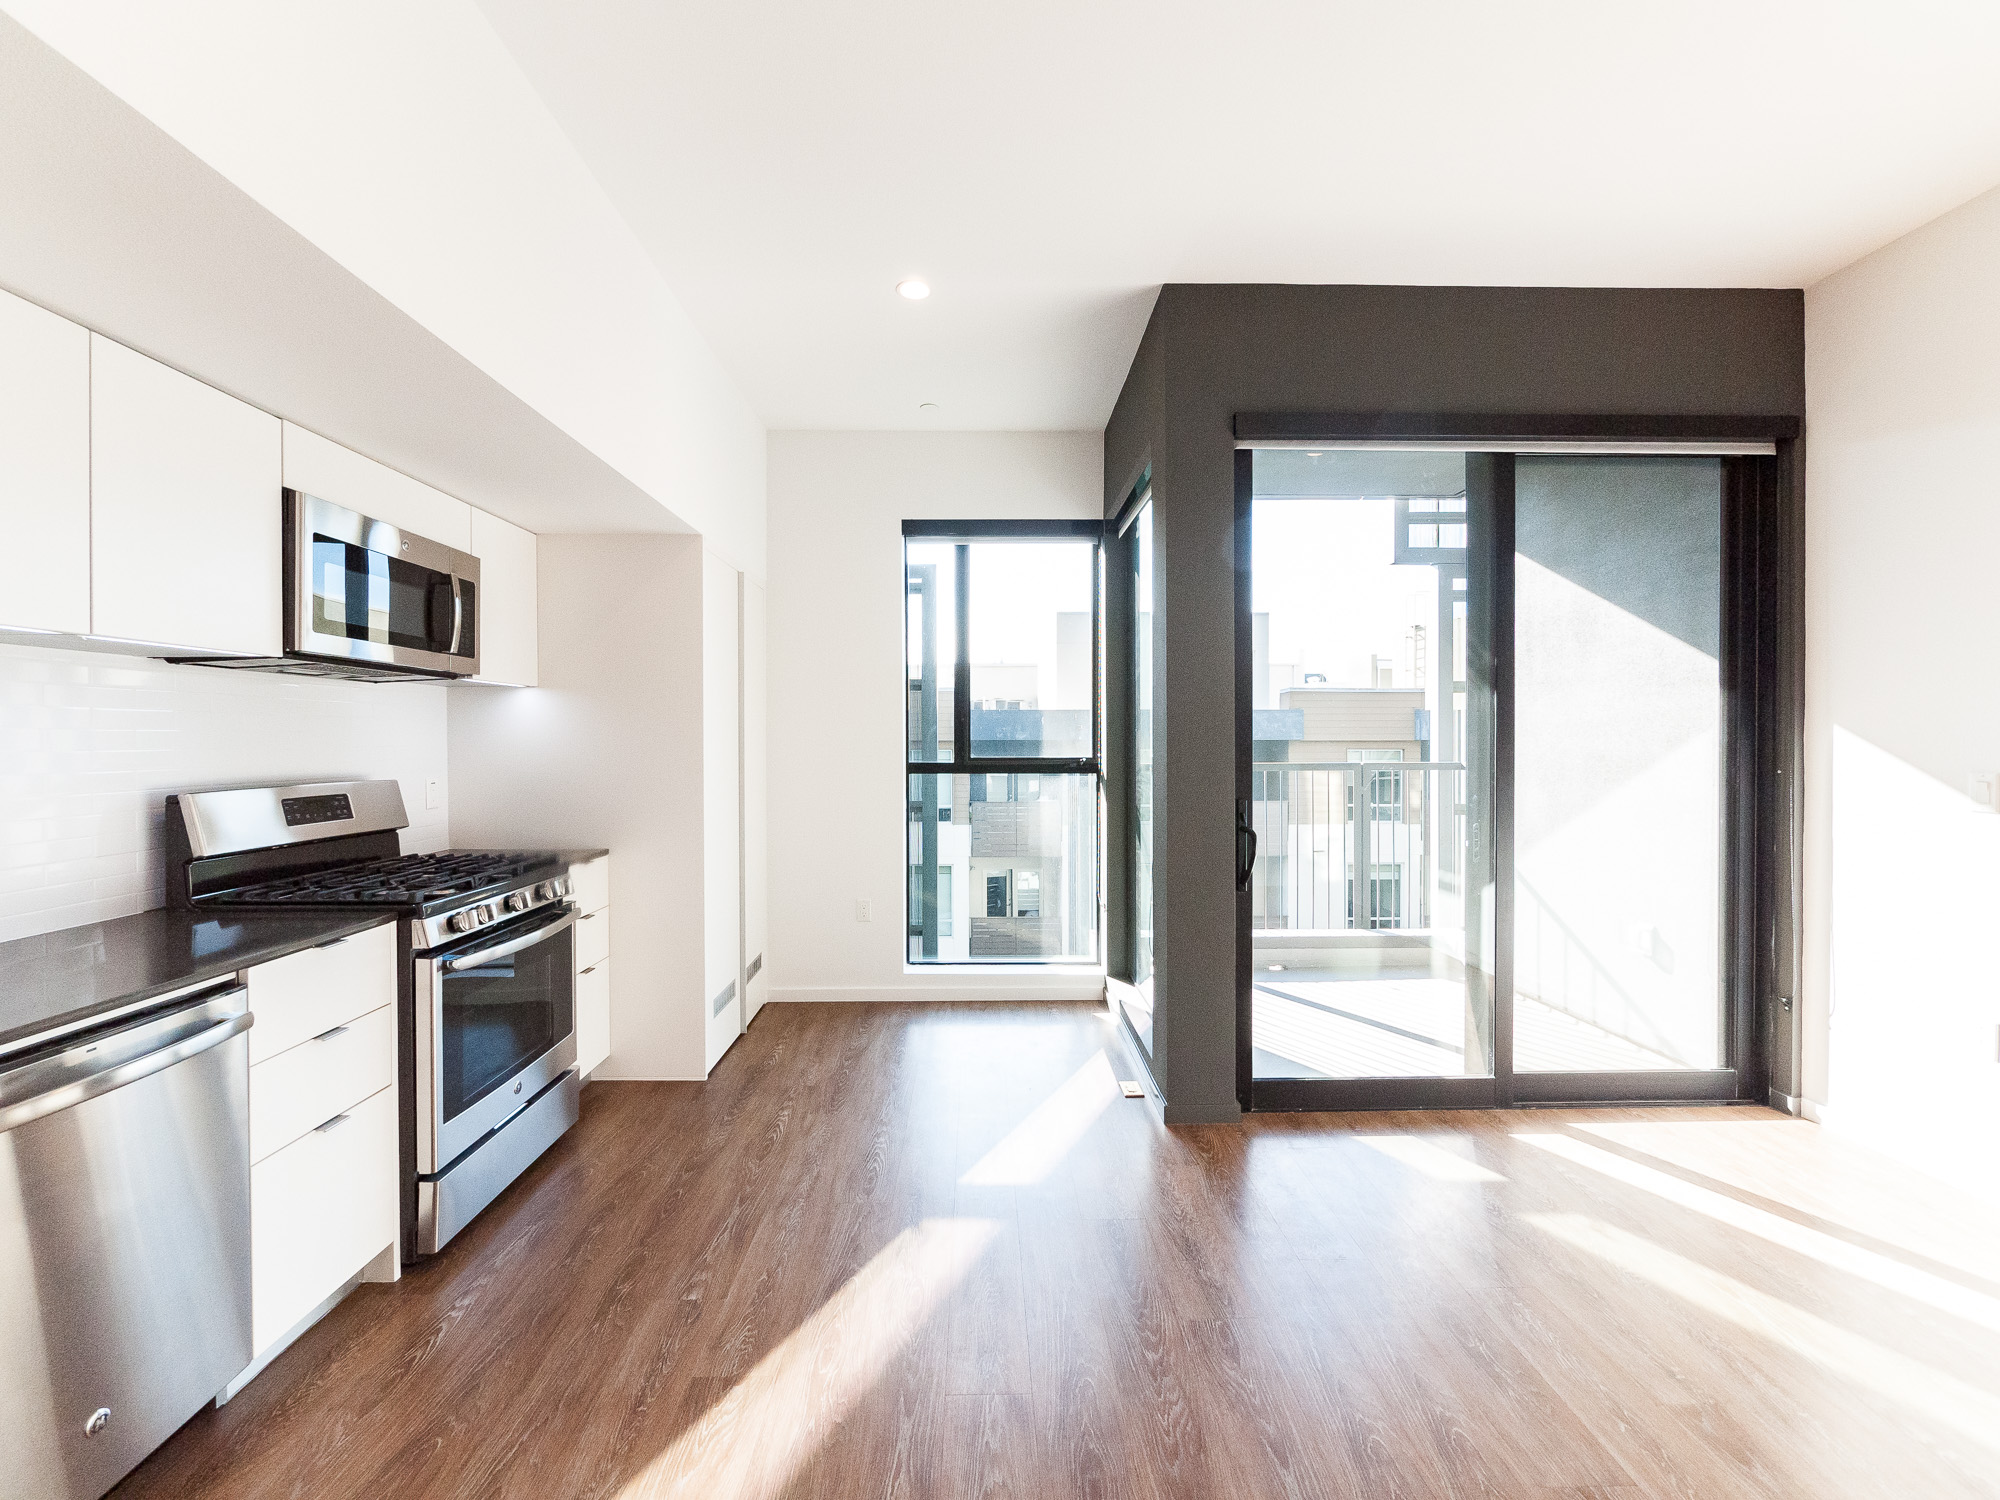 The Line Lofts sets the new standard for modern Hollywood architectural apartments...